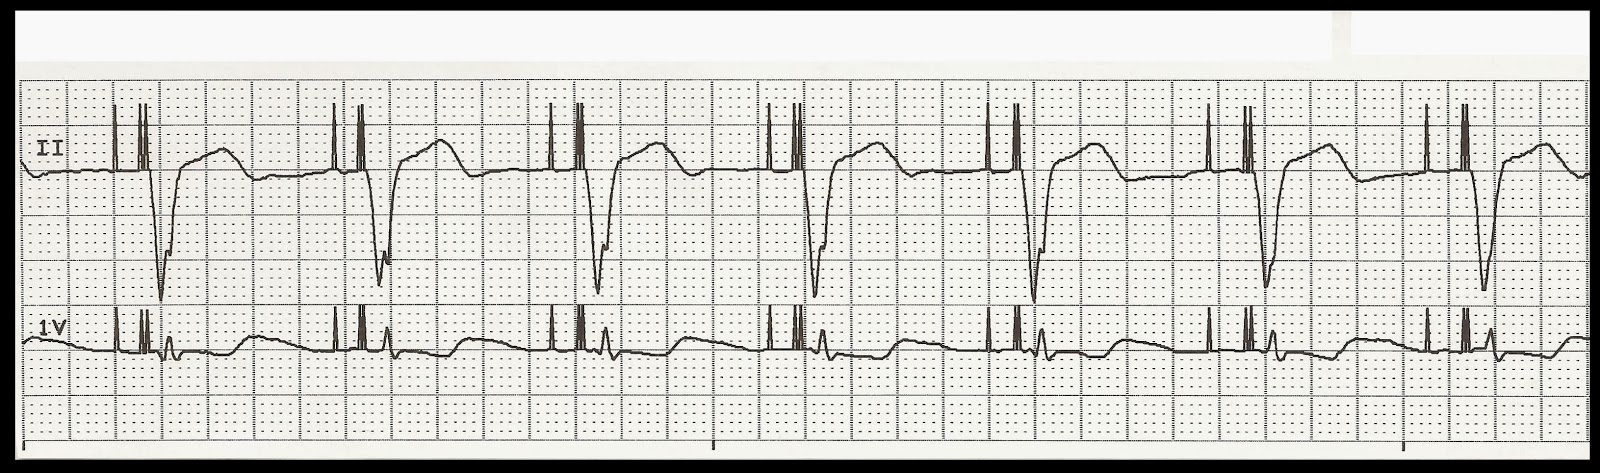 Float Nurse: EKG Rhythm Strip Quiz 188